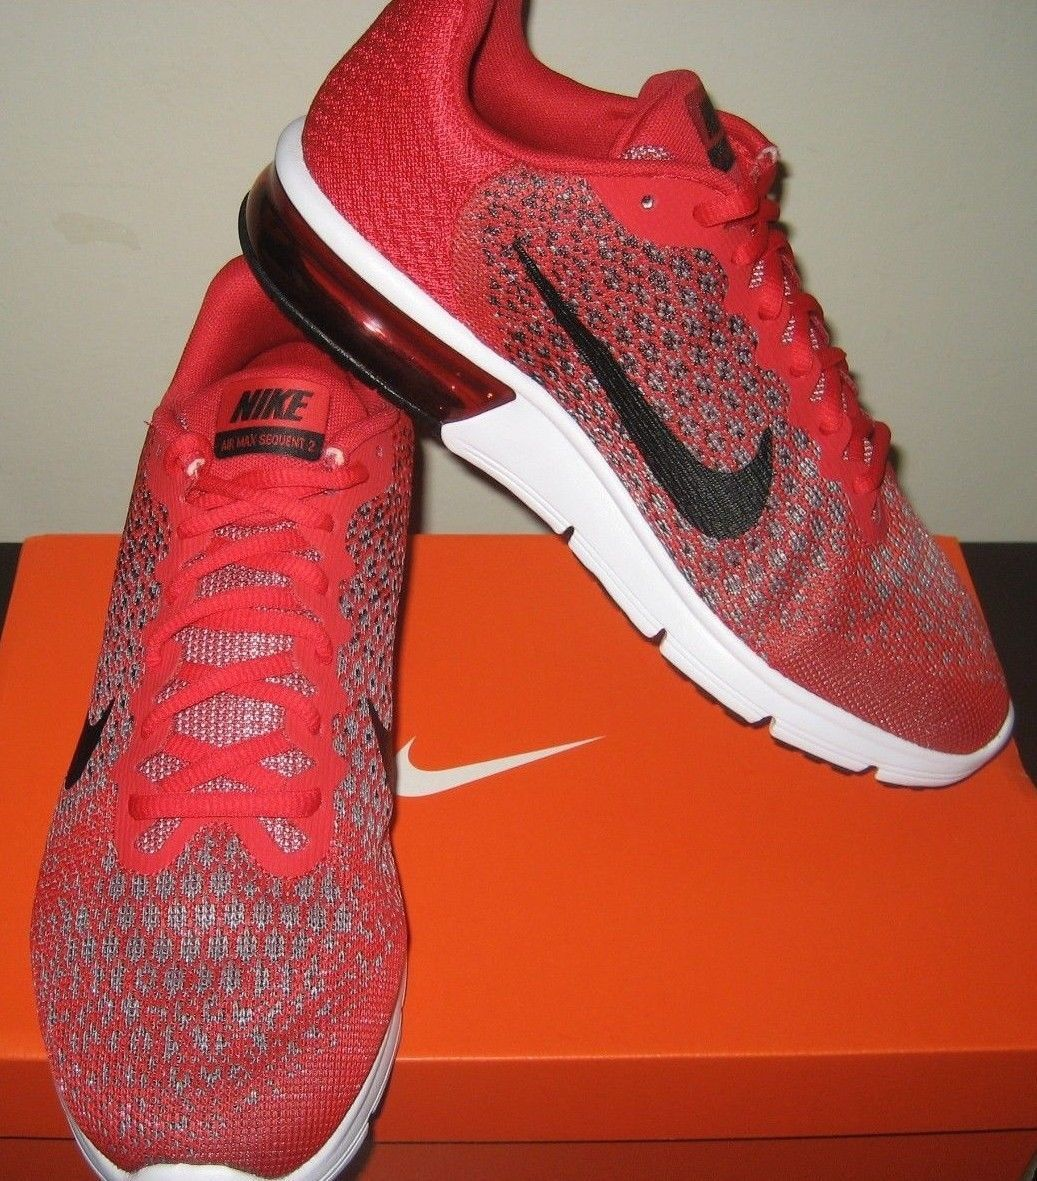 cf1745b34b7 Nike Mens Air Max Sequent 2 Running Shoes and 14 similar items. 57